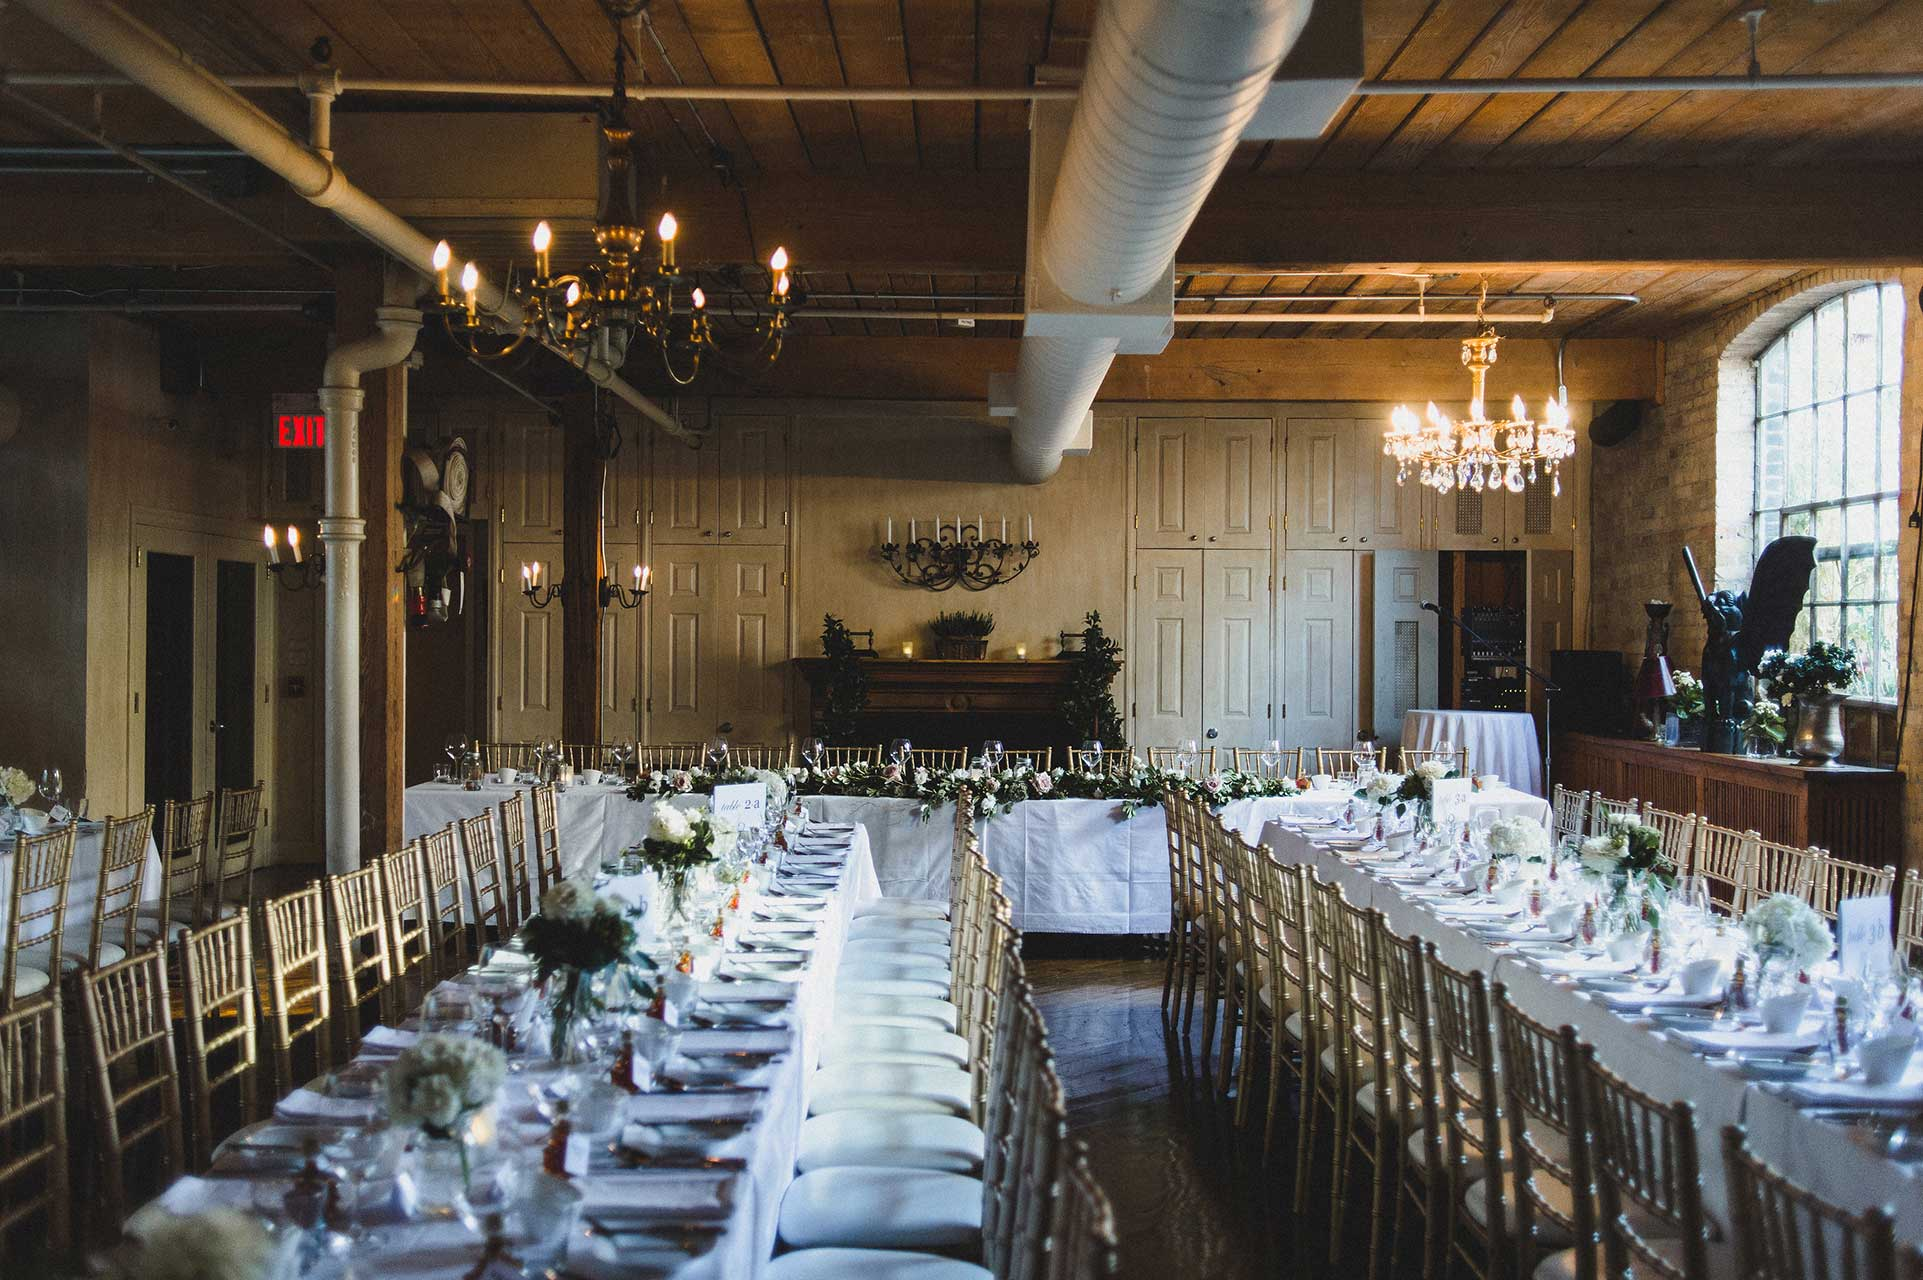 Unique Wedding Venues Toronto - Wedding Reception - Wedding Table Plan - Private Dining Room